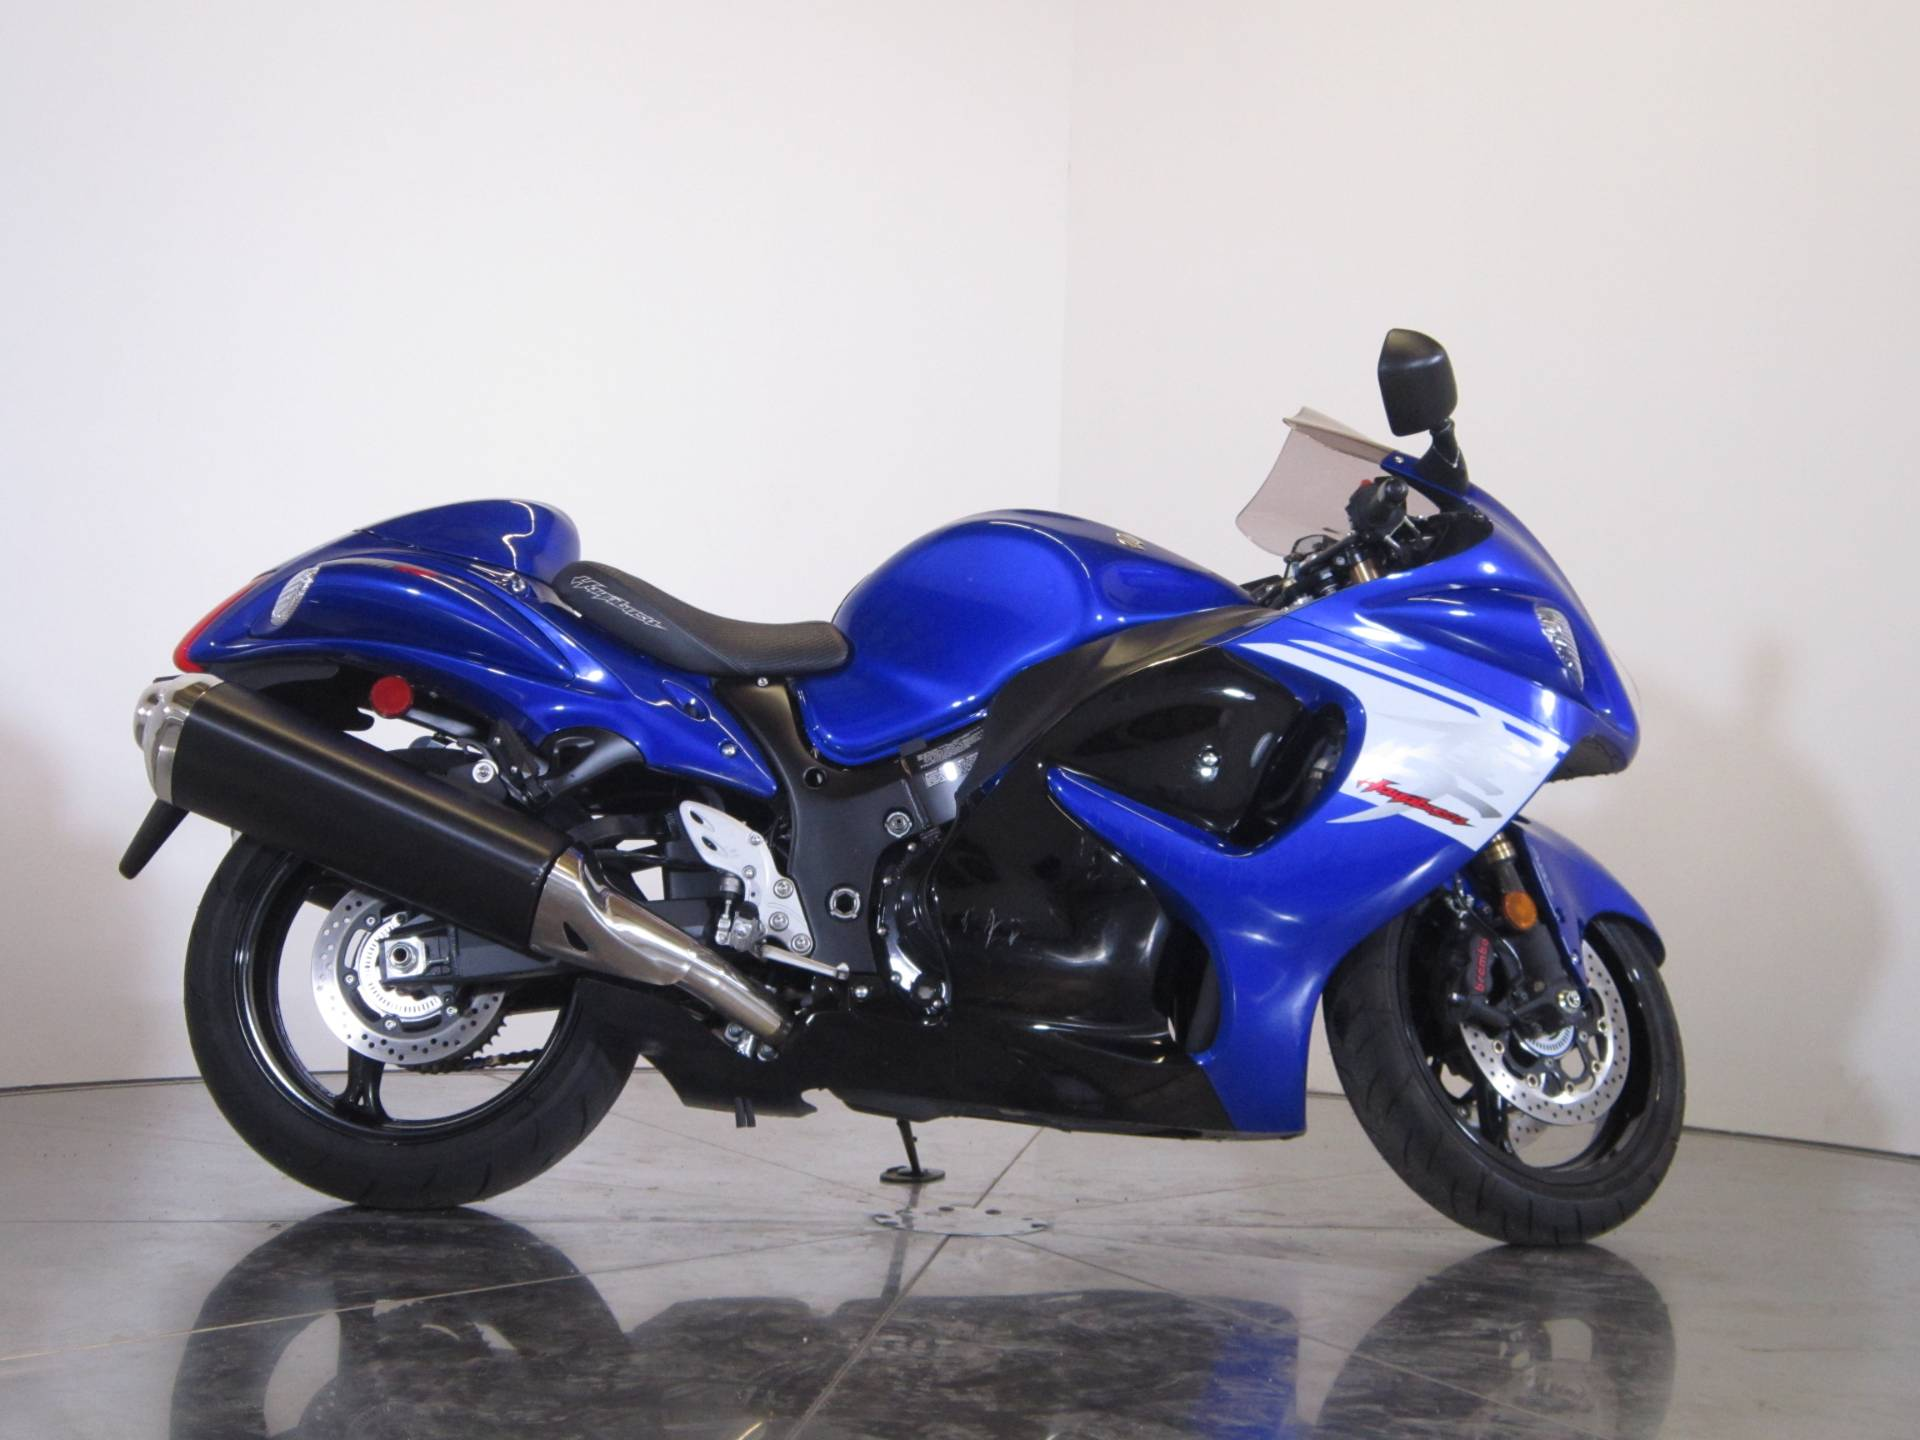 Used 2017 Suzuki Hayabusa Motorcycles In Greenwood Village